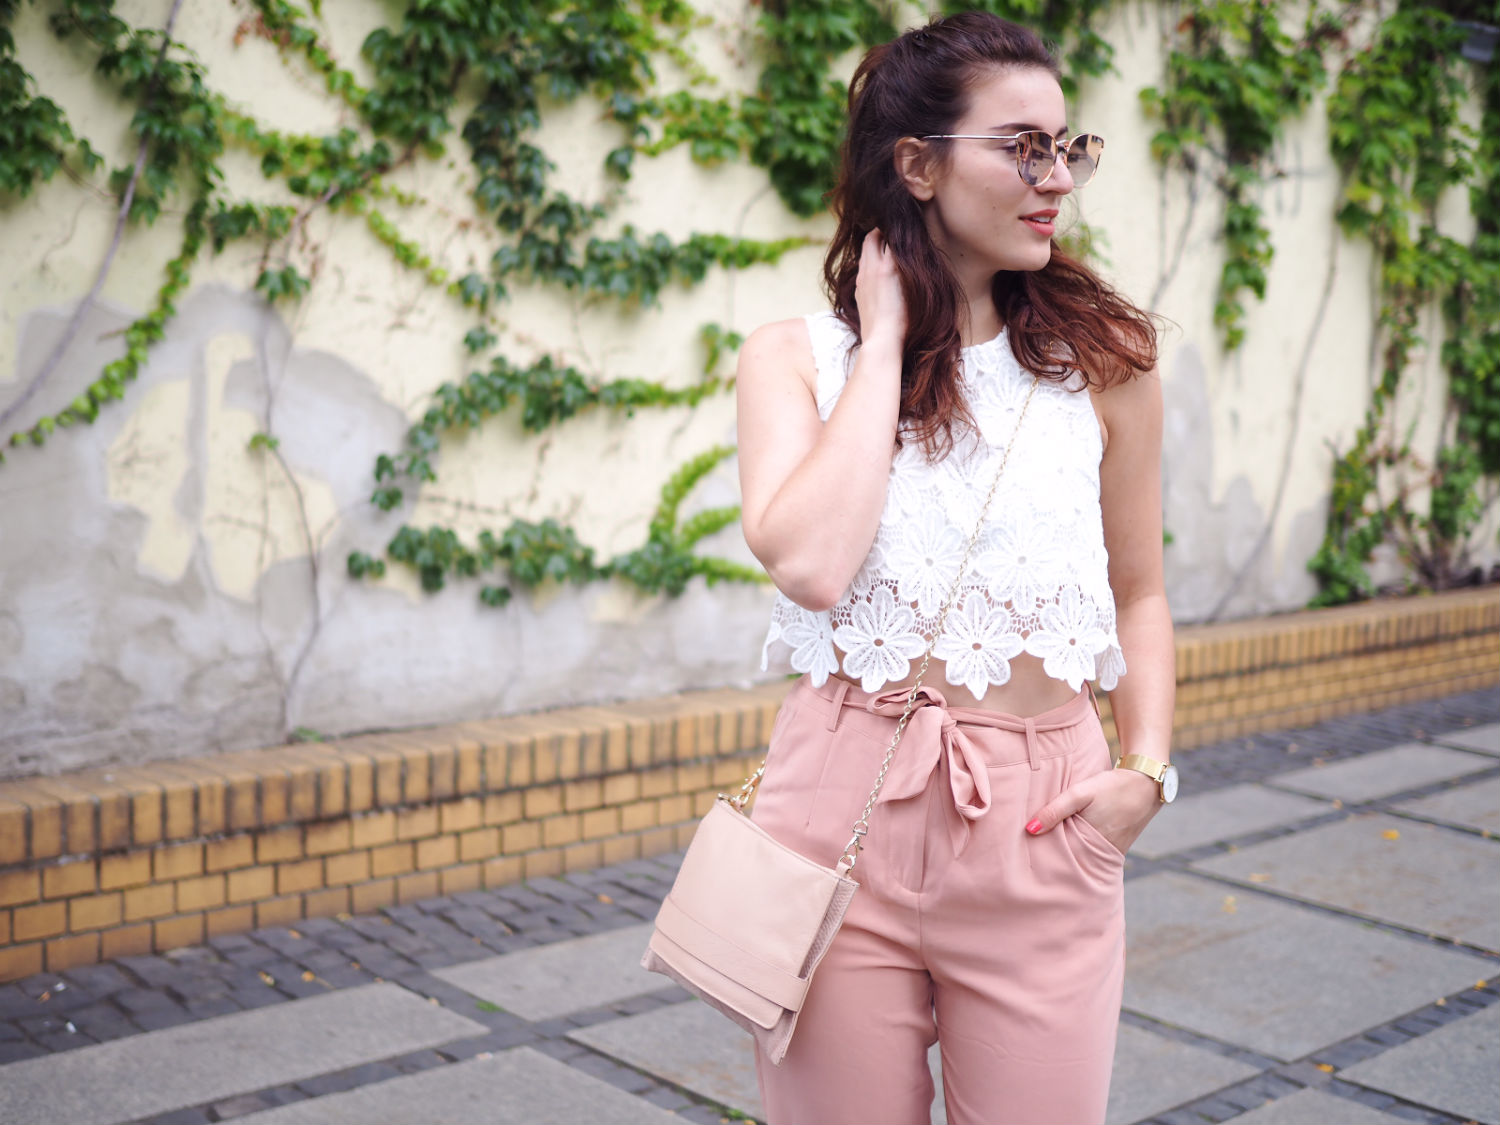 blush culottes adidas superstars streetstyle oasis cluse watch summer look berlin fashion week